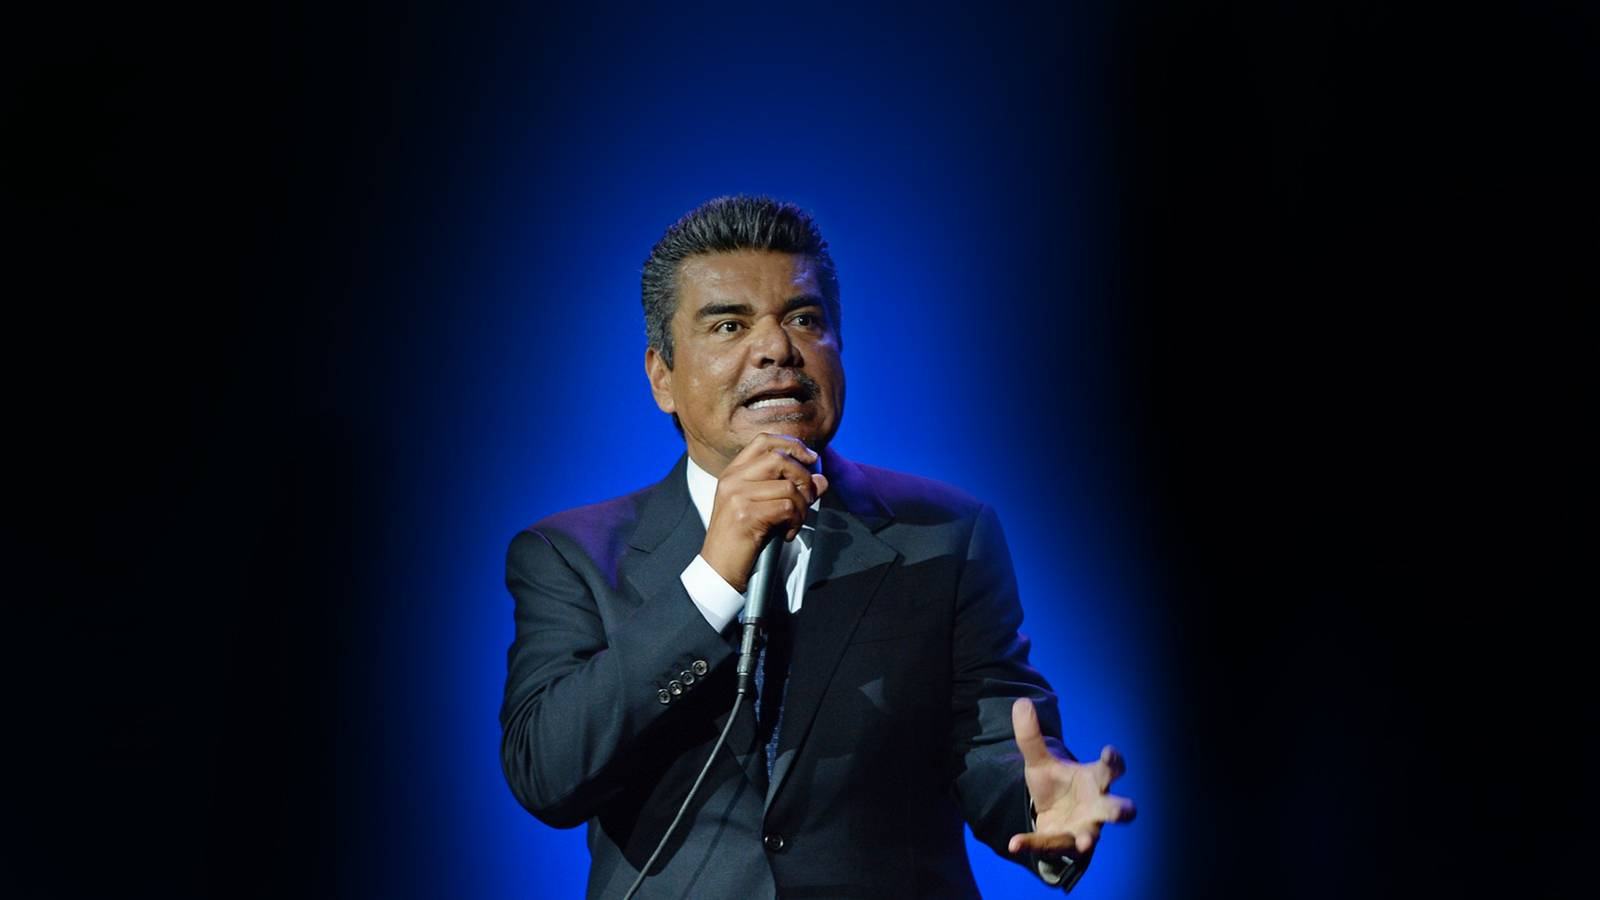 George Lopez (Rescheduled from 3/14, 5/29)